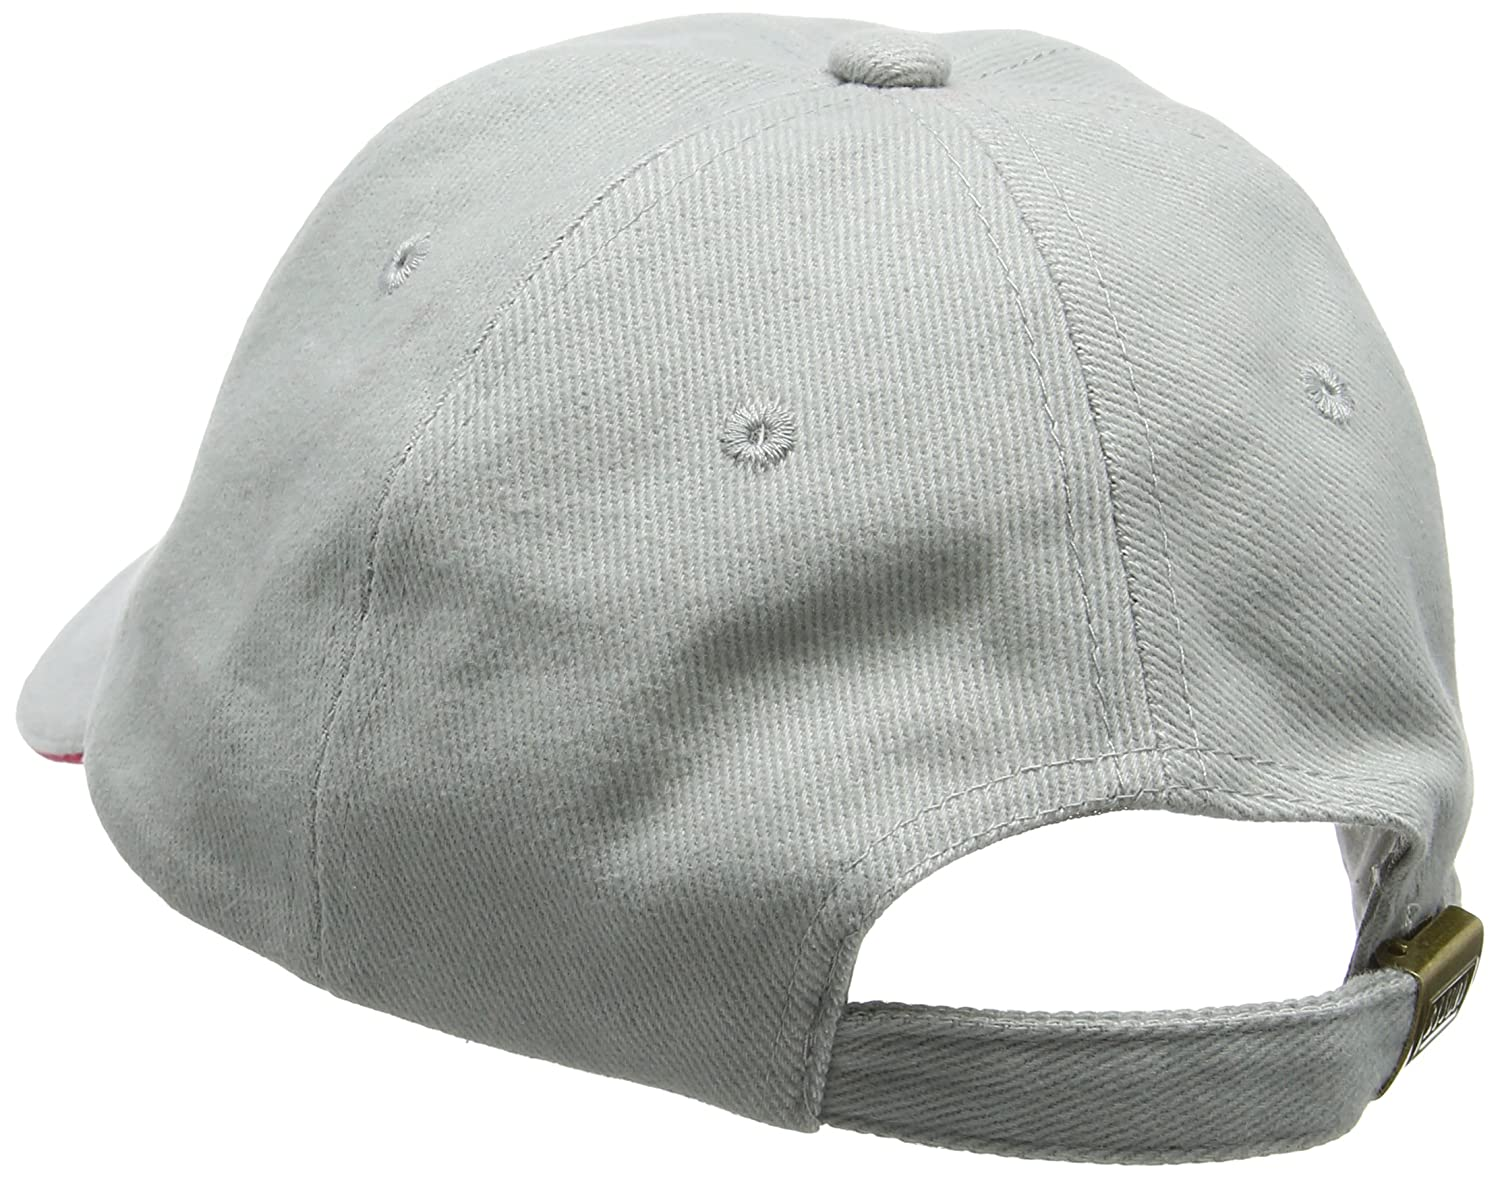 Result Rc24p Low-Profile Heavy Brushed Cotton Cap with Sandwich Peak